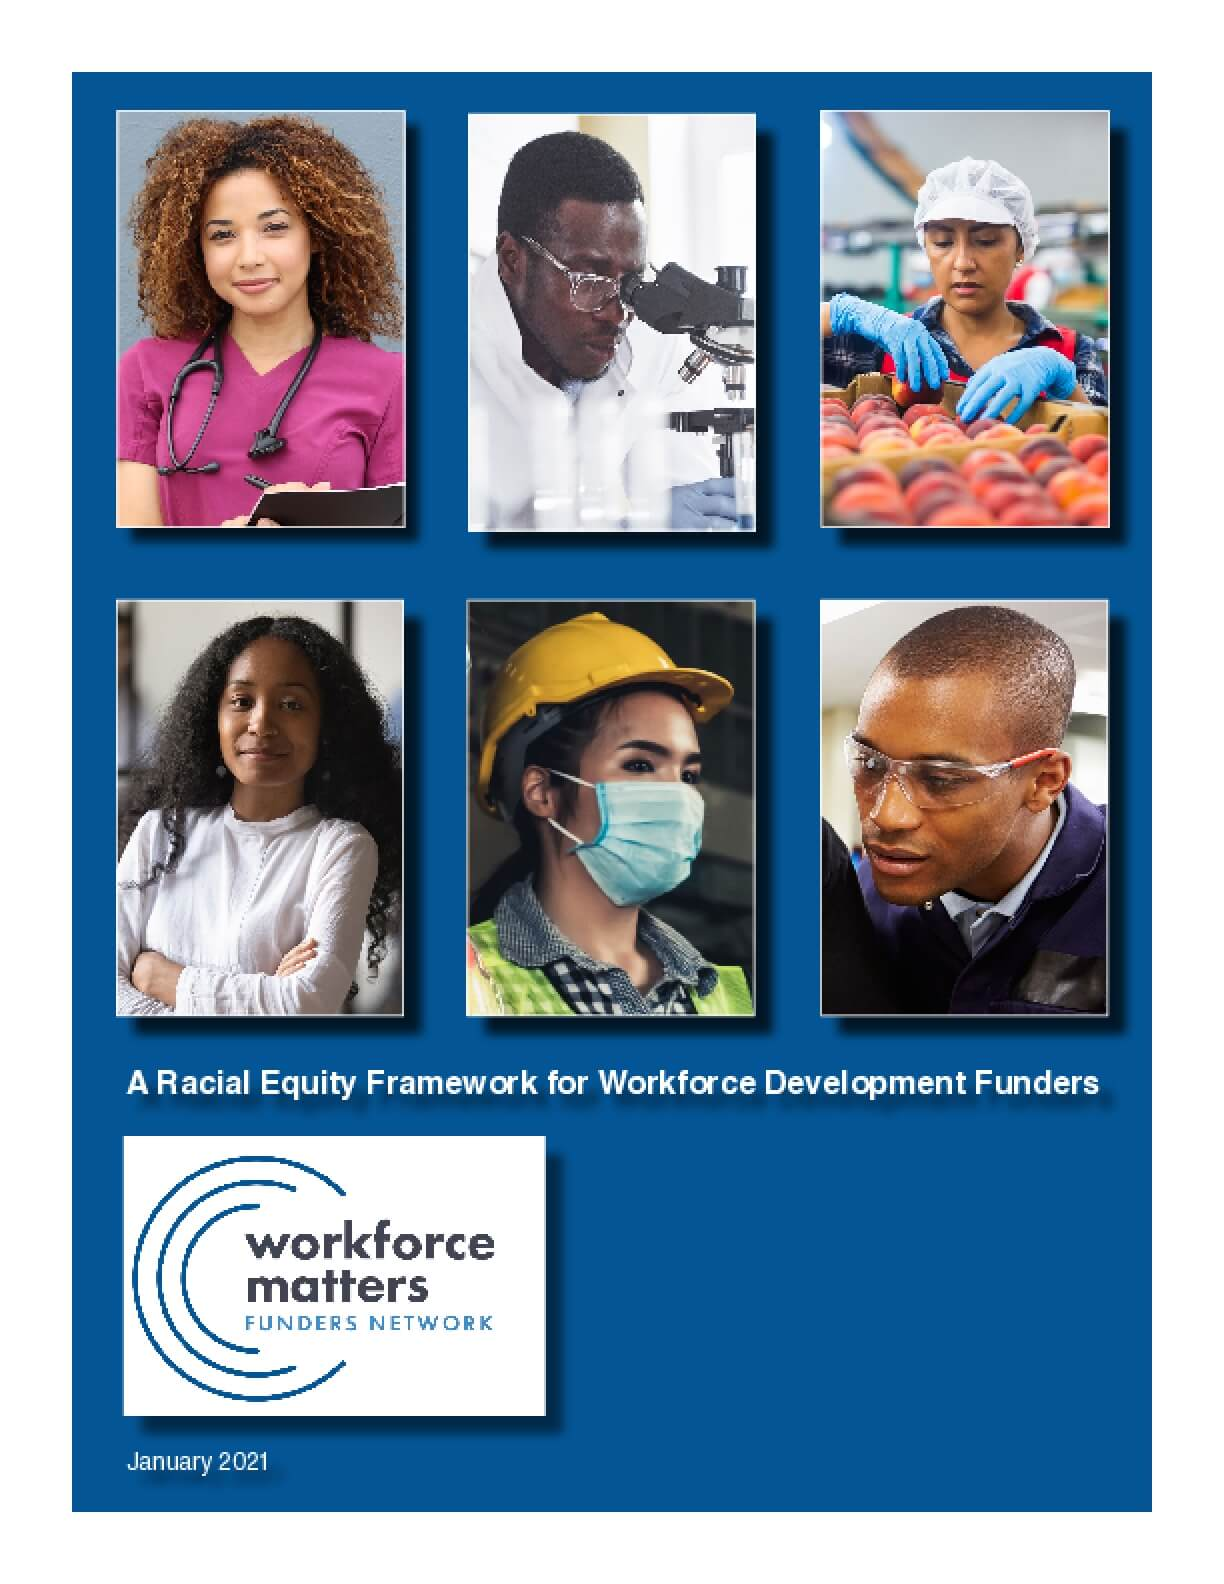 A Racial Equity Framework for Workforce Development Funders